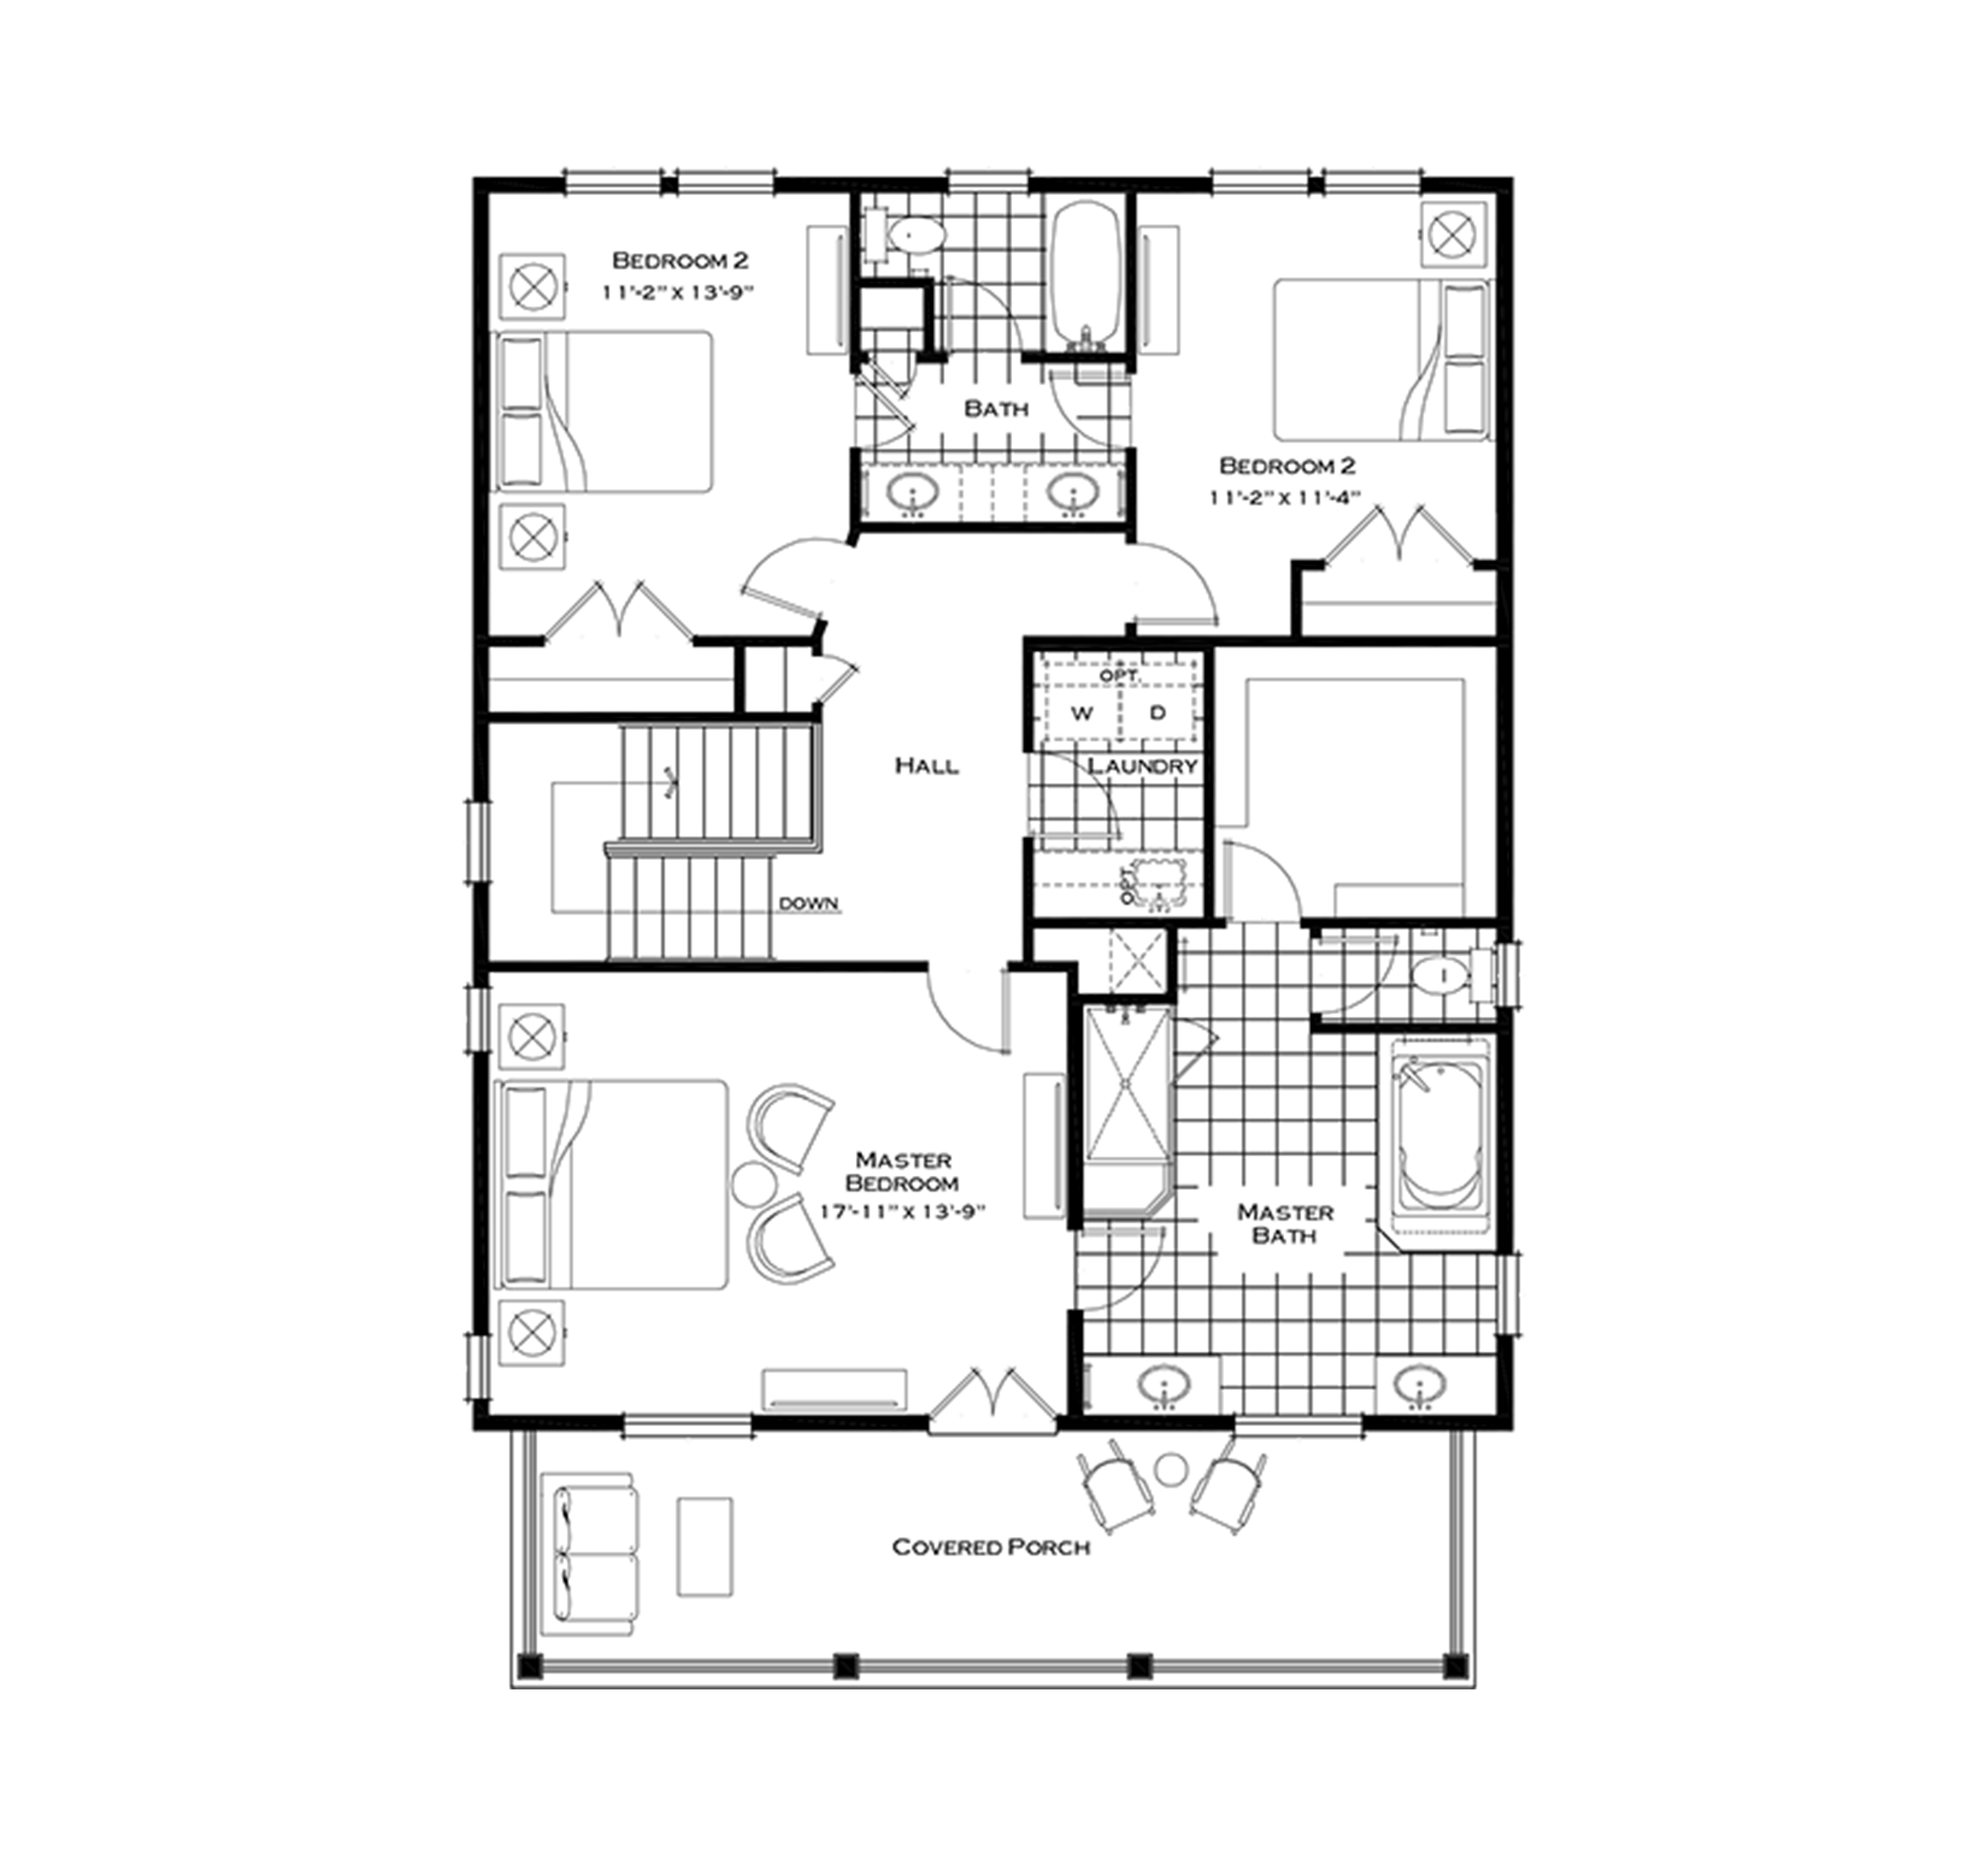 Second Floor with Optional Extended Laundry